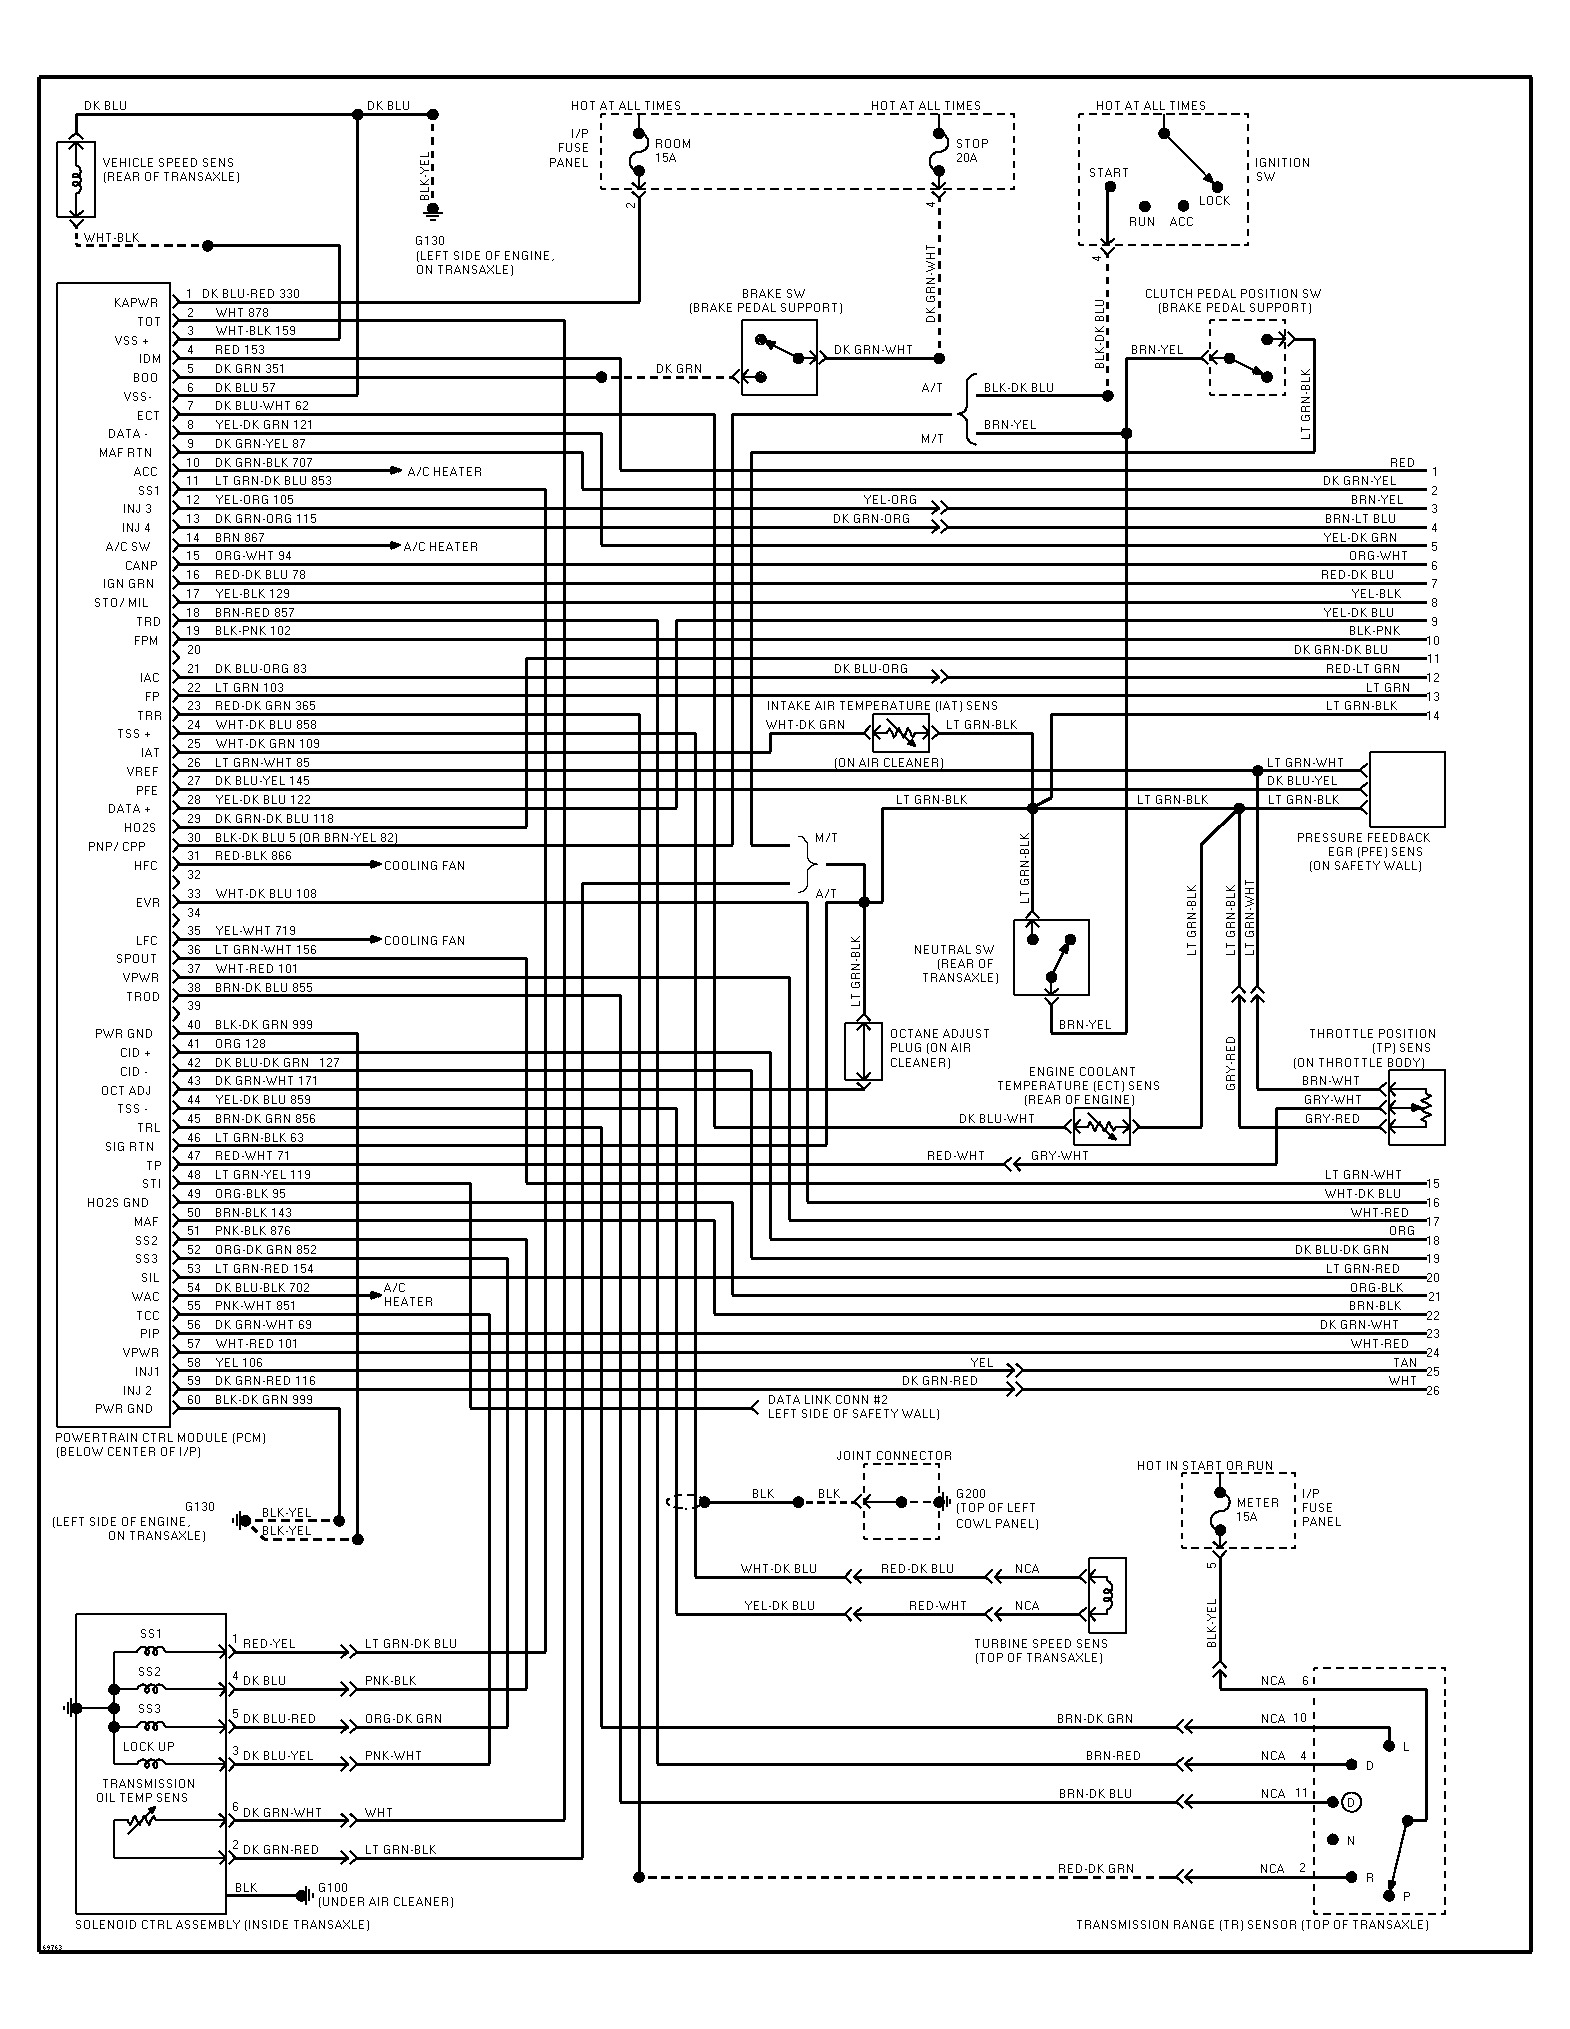 original 1995 ford escort wiring diagram i need to find a color coded ford escort wiring diagram at edmiracle.co